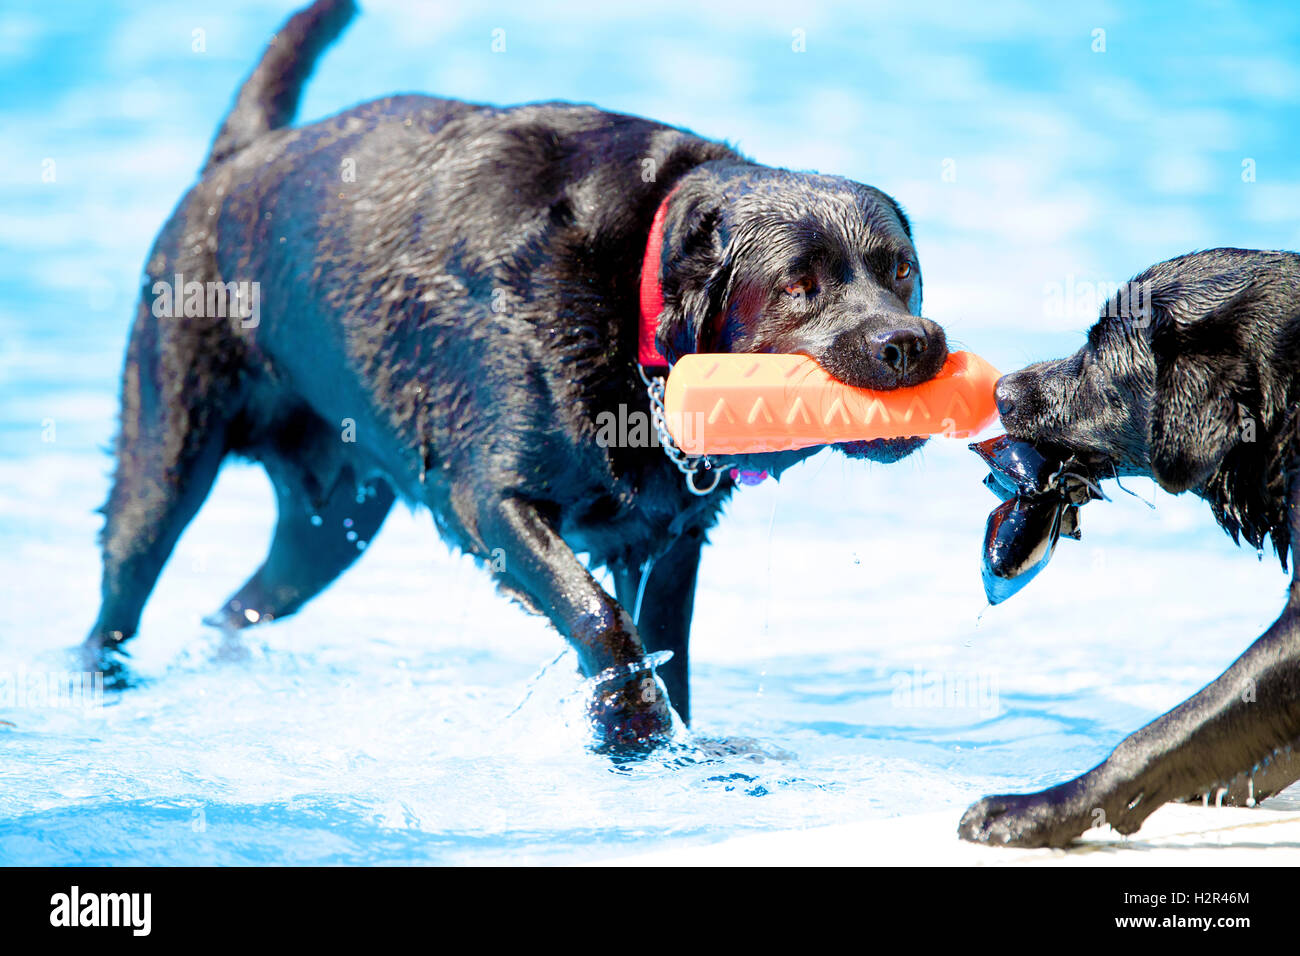 Two dogs, Labrador Retriever, both pulling a toy in swimming pool, blue water - Stock Image